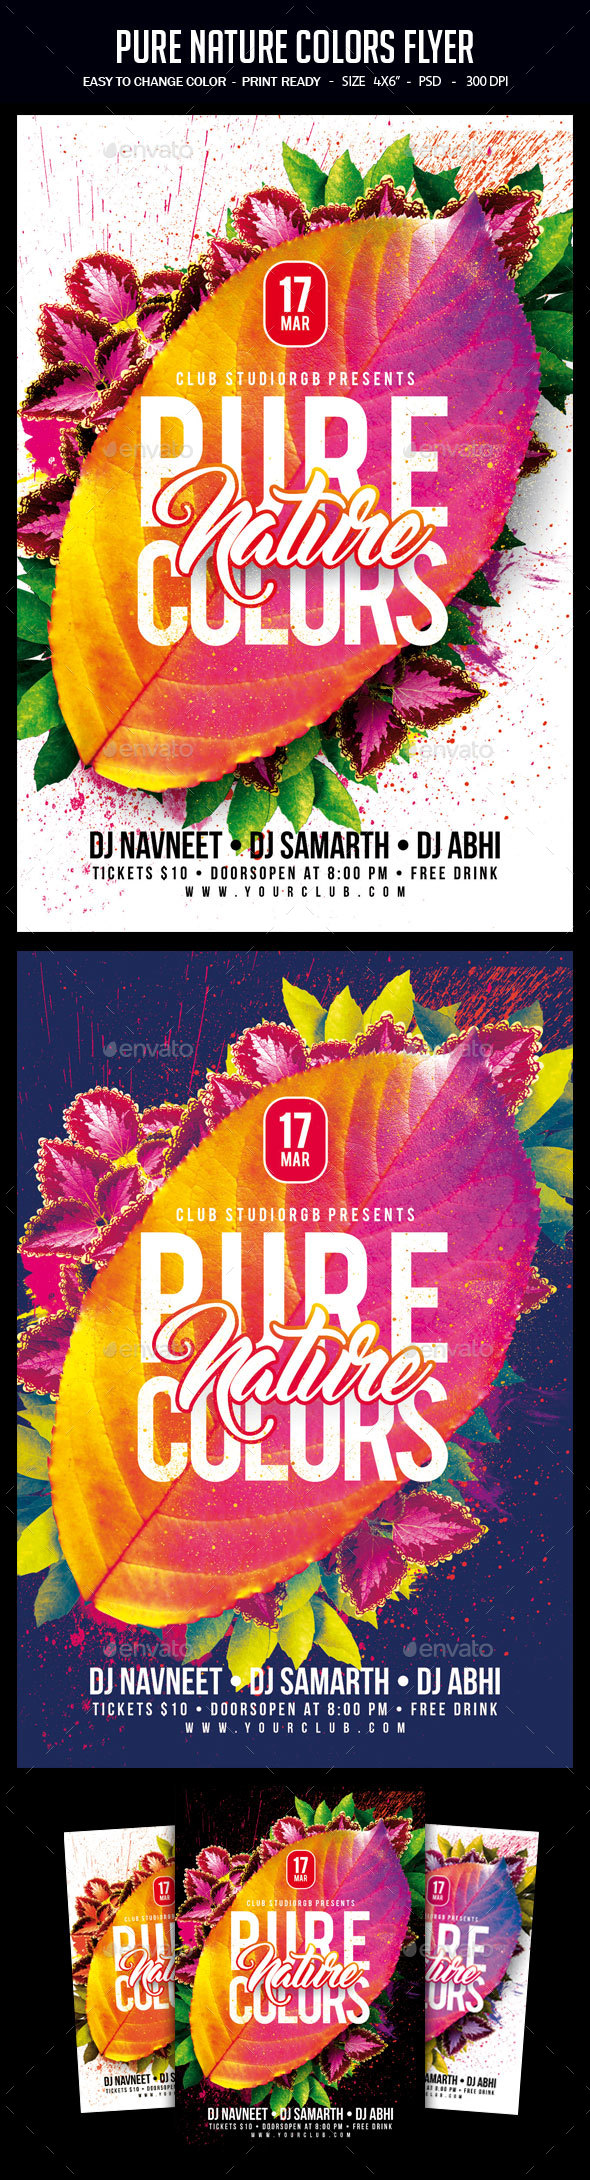 Pure Nature Colors Flyer - Clubs & Parties Events